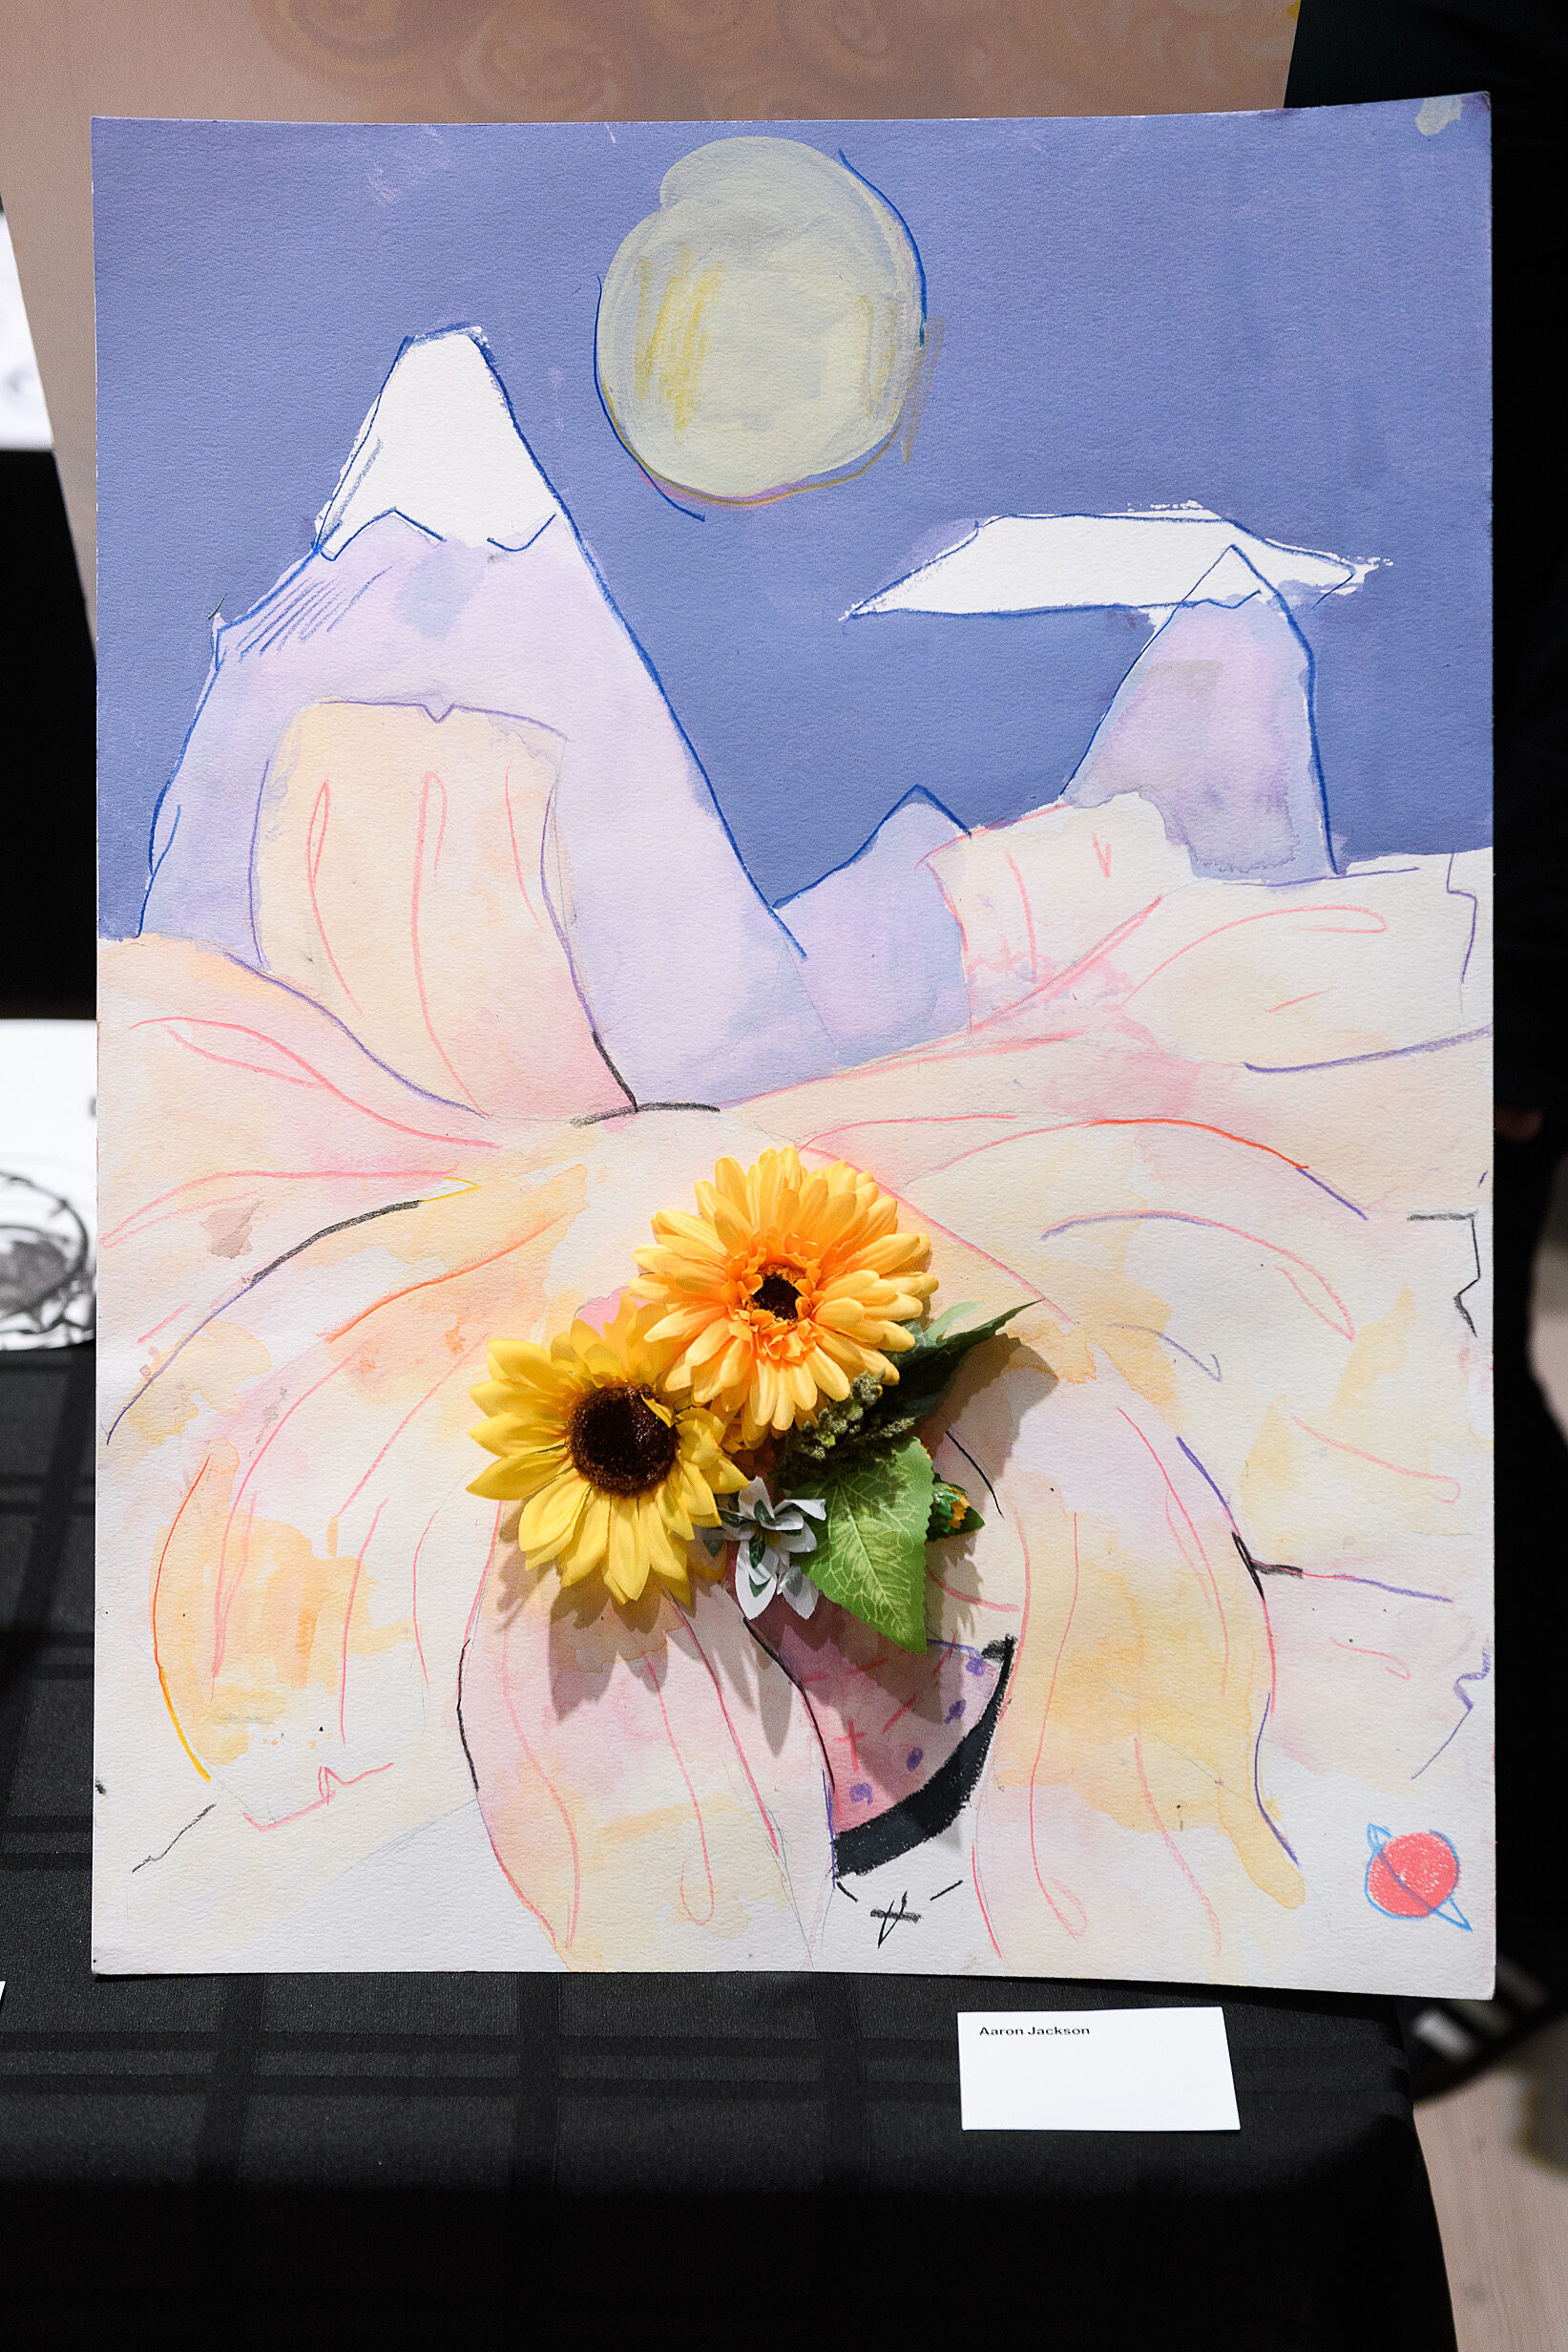 Mixed media of flowers and a landscape.